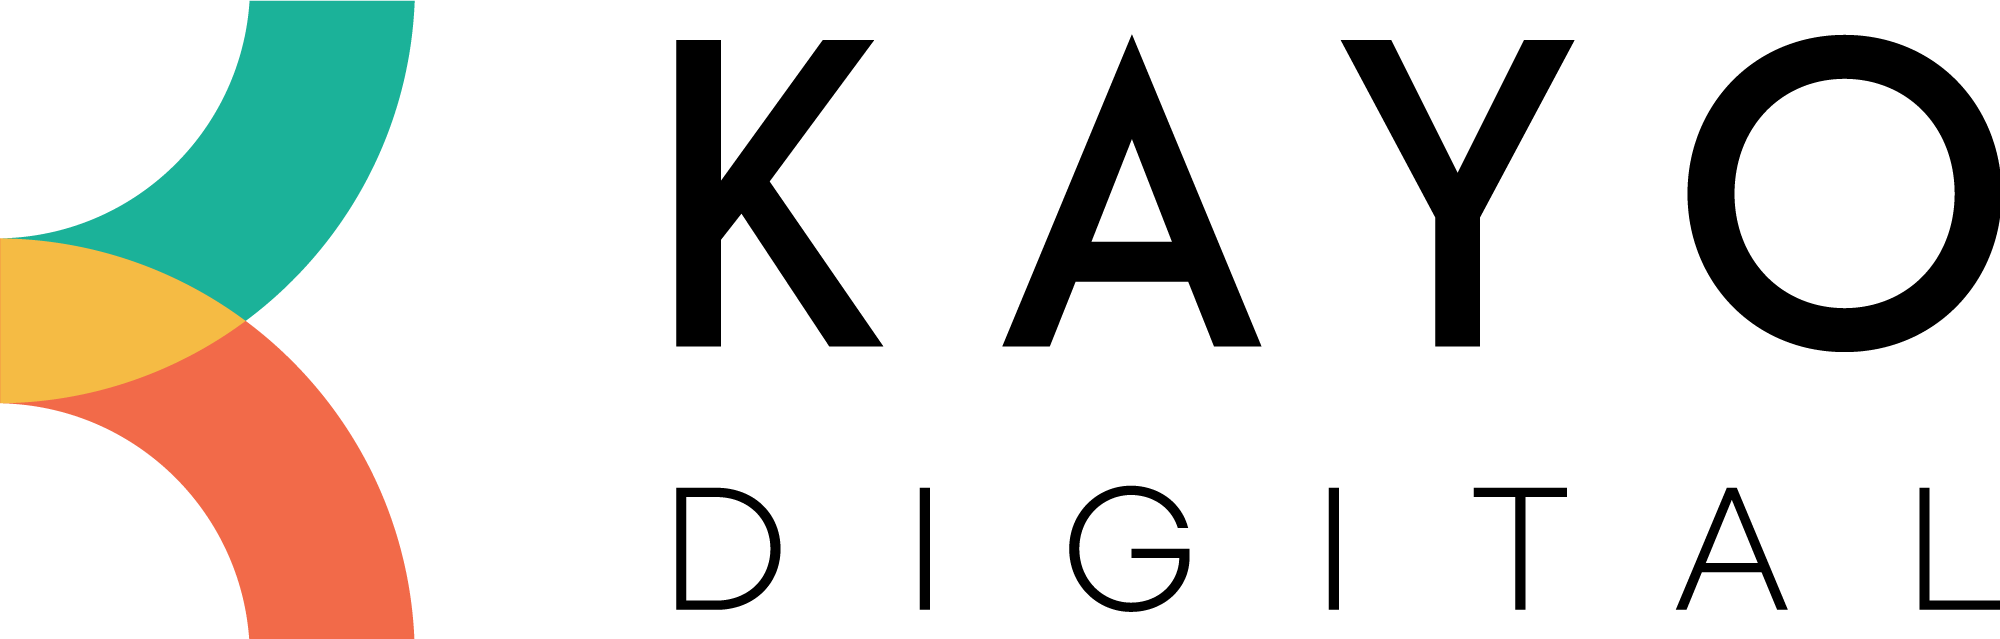 Kayo Digital dark logo